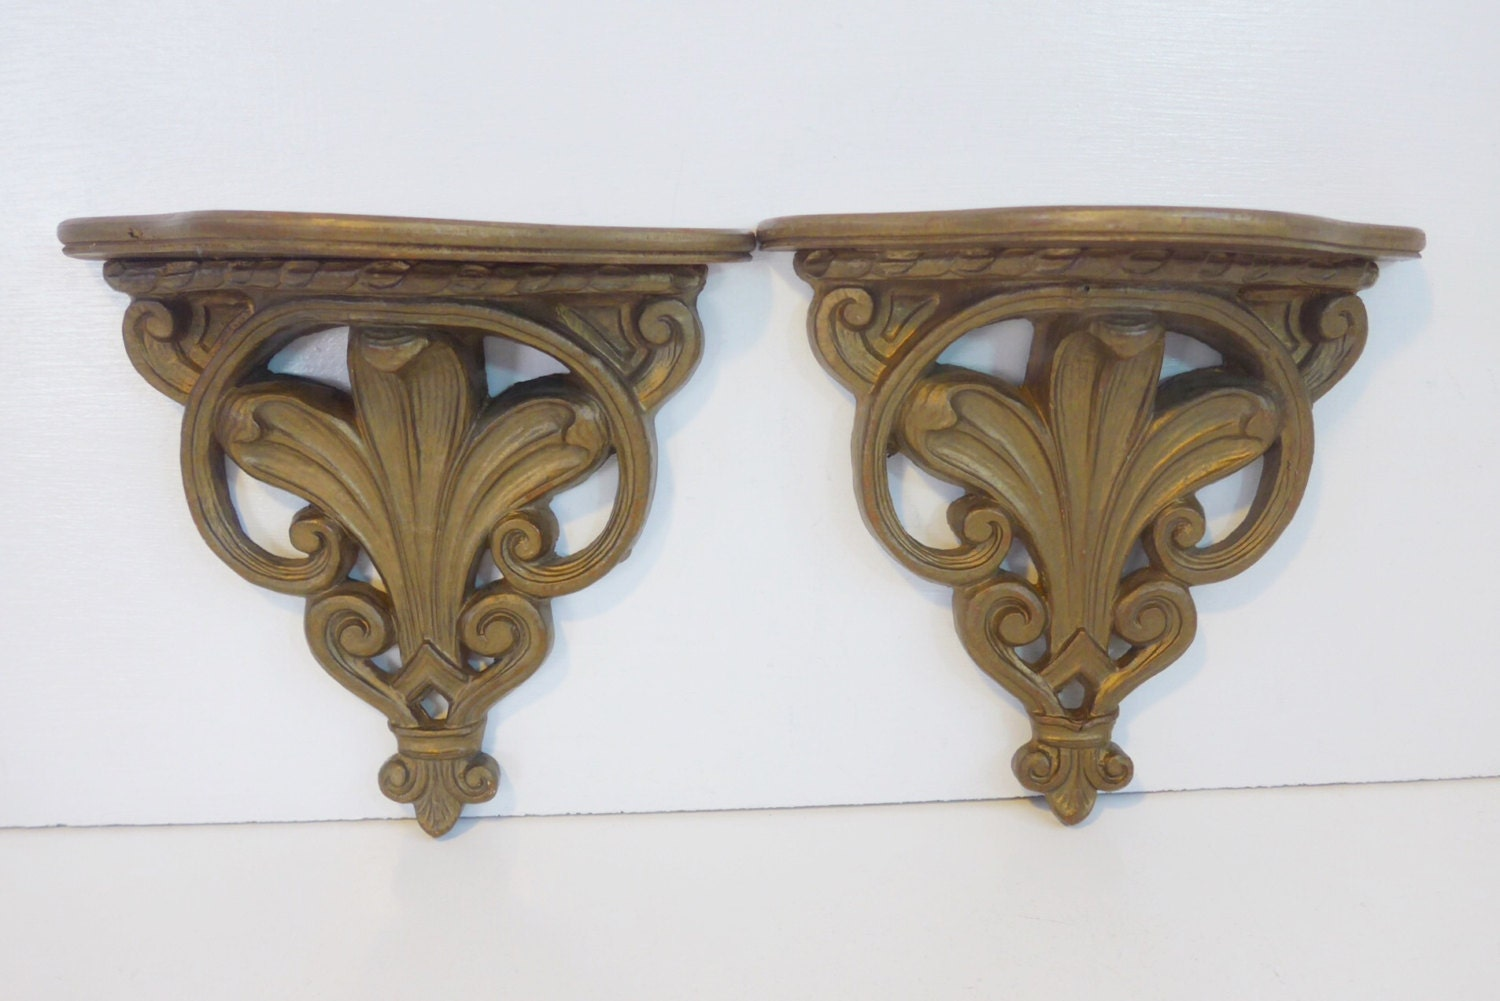 Pair vintage burnished gold ornate wood shelves 2 gold mid pair vintage burnished gold ornate wood shelves 2 gold mid century nifty products retro wall shelves french provincial shabby chic amipublicfo Images